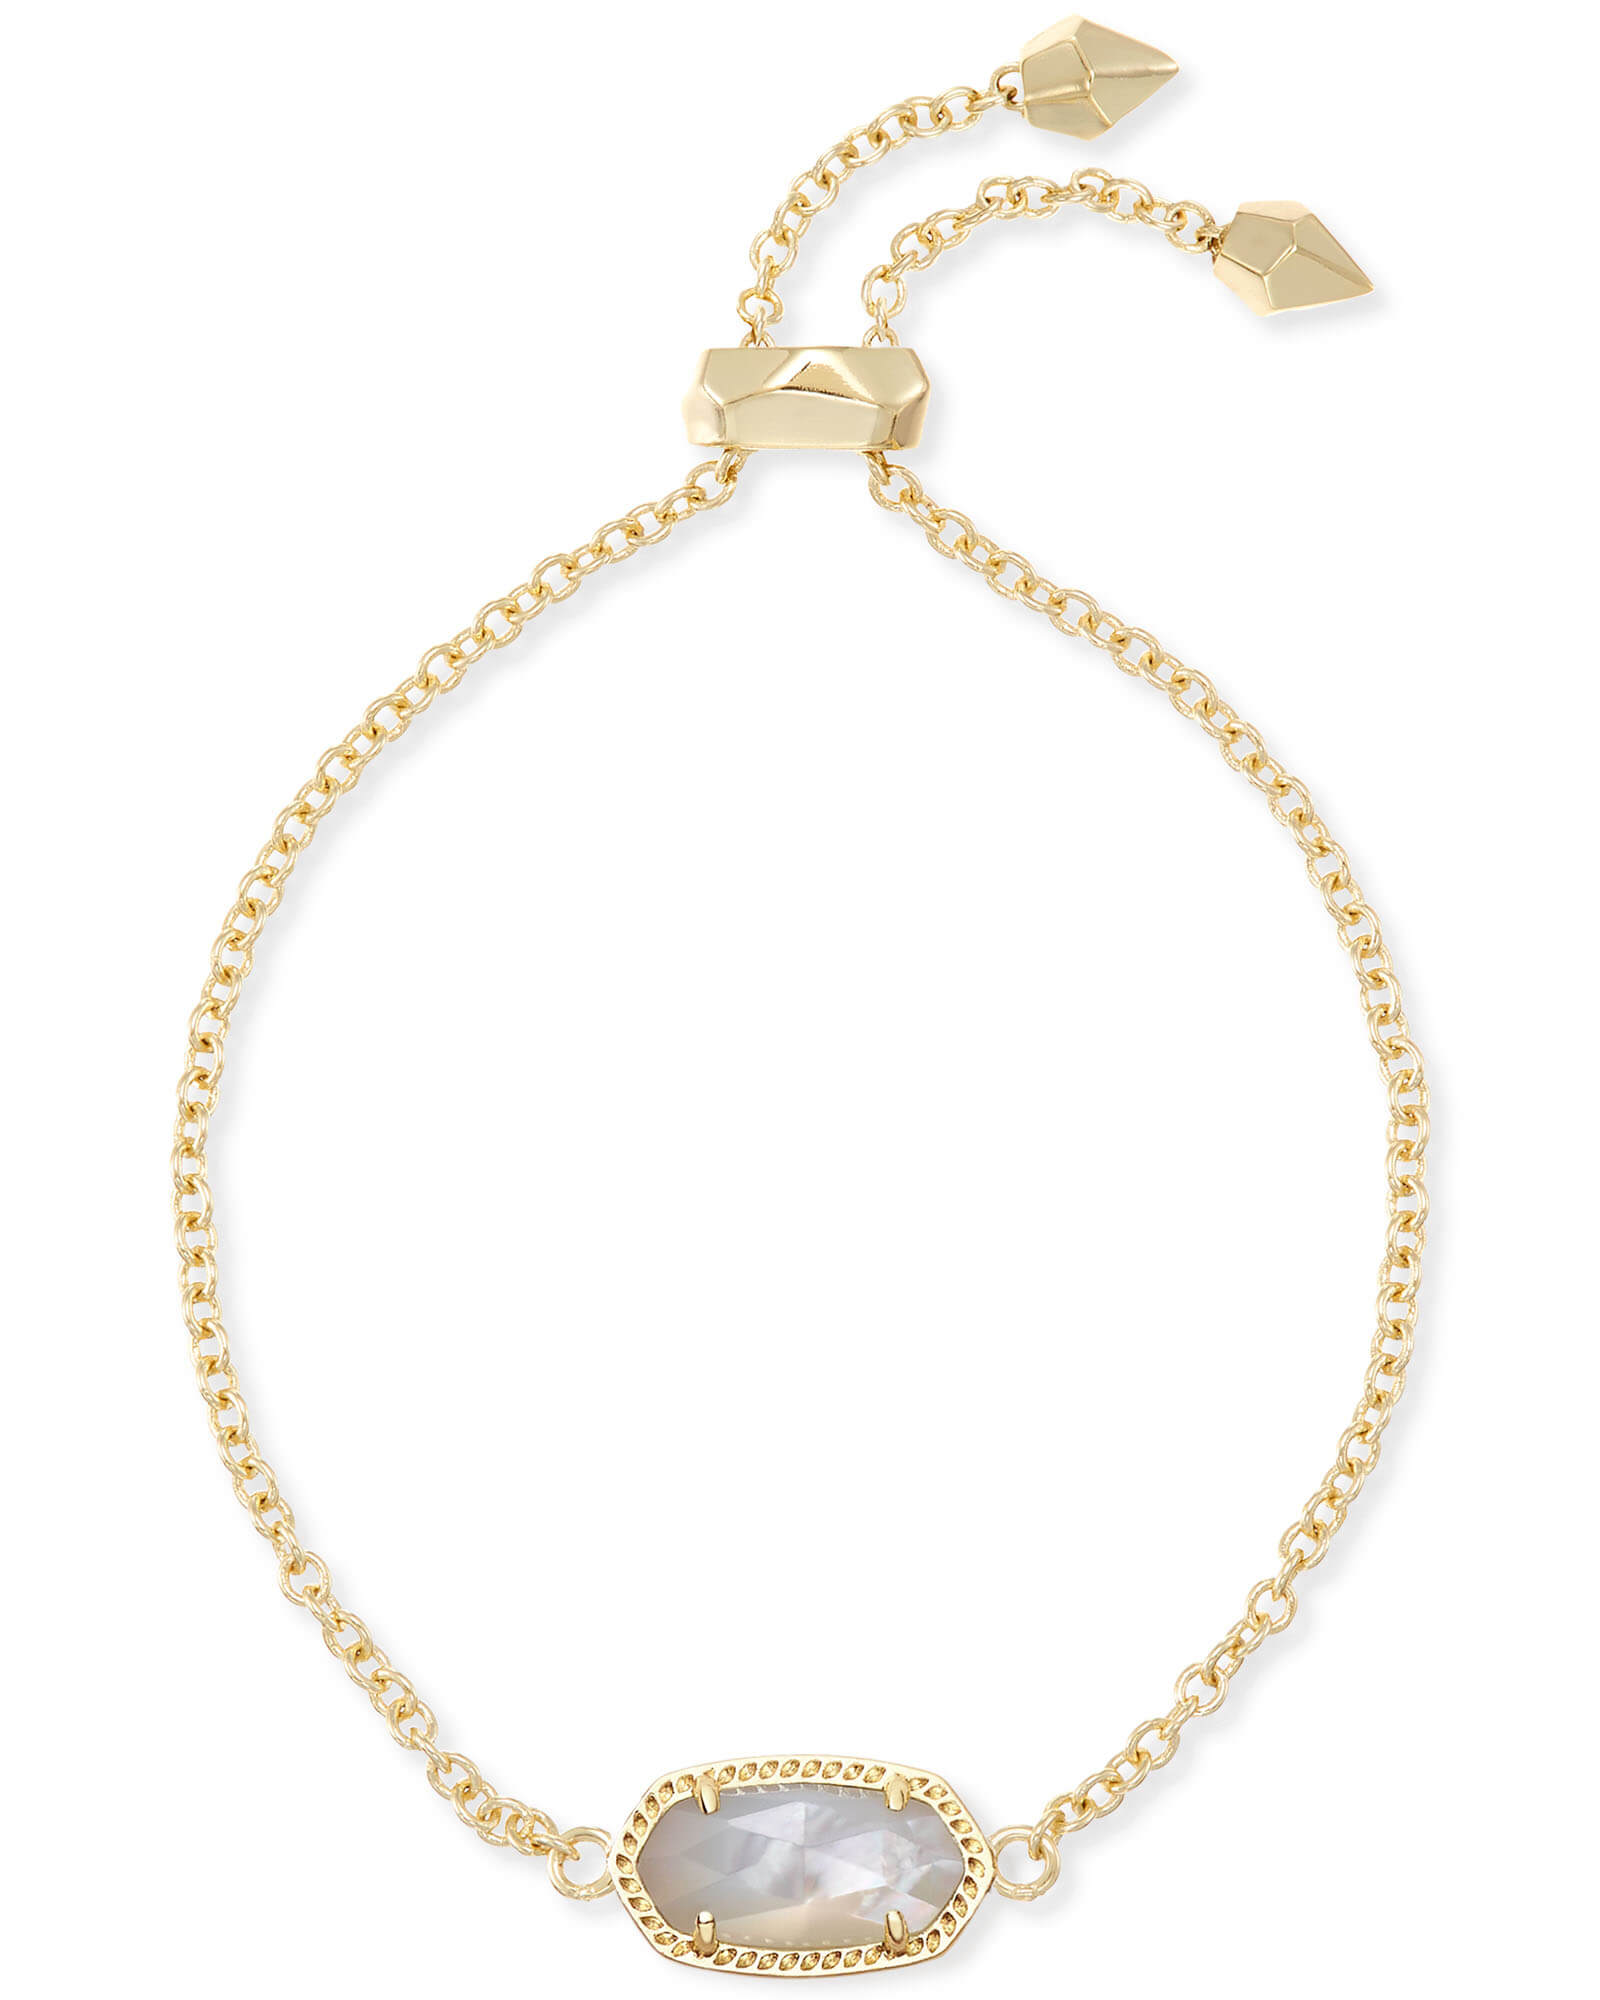 Elaina Gold Adjustable Chain Bracelet in Ivory Pearl